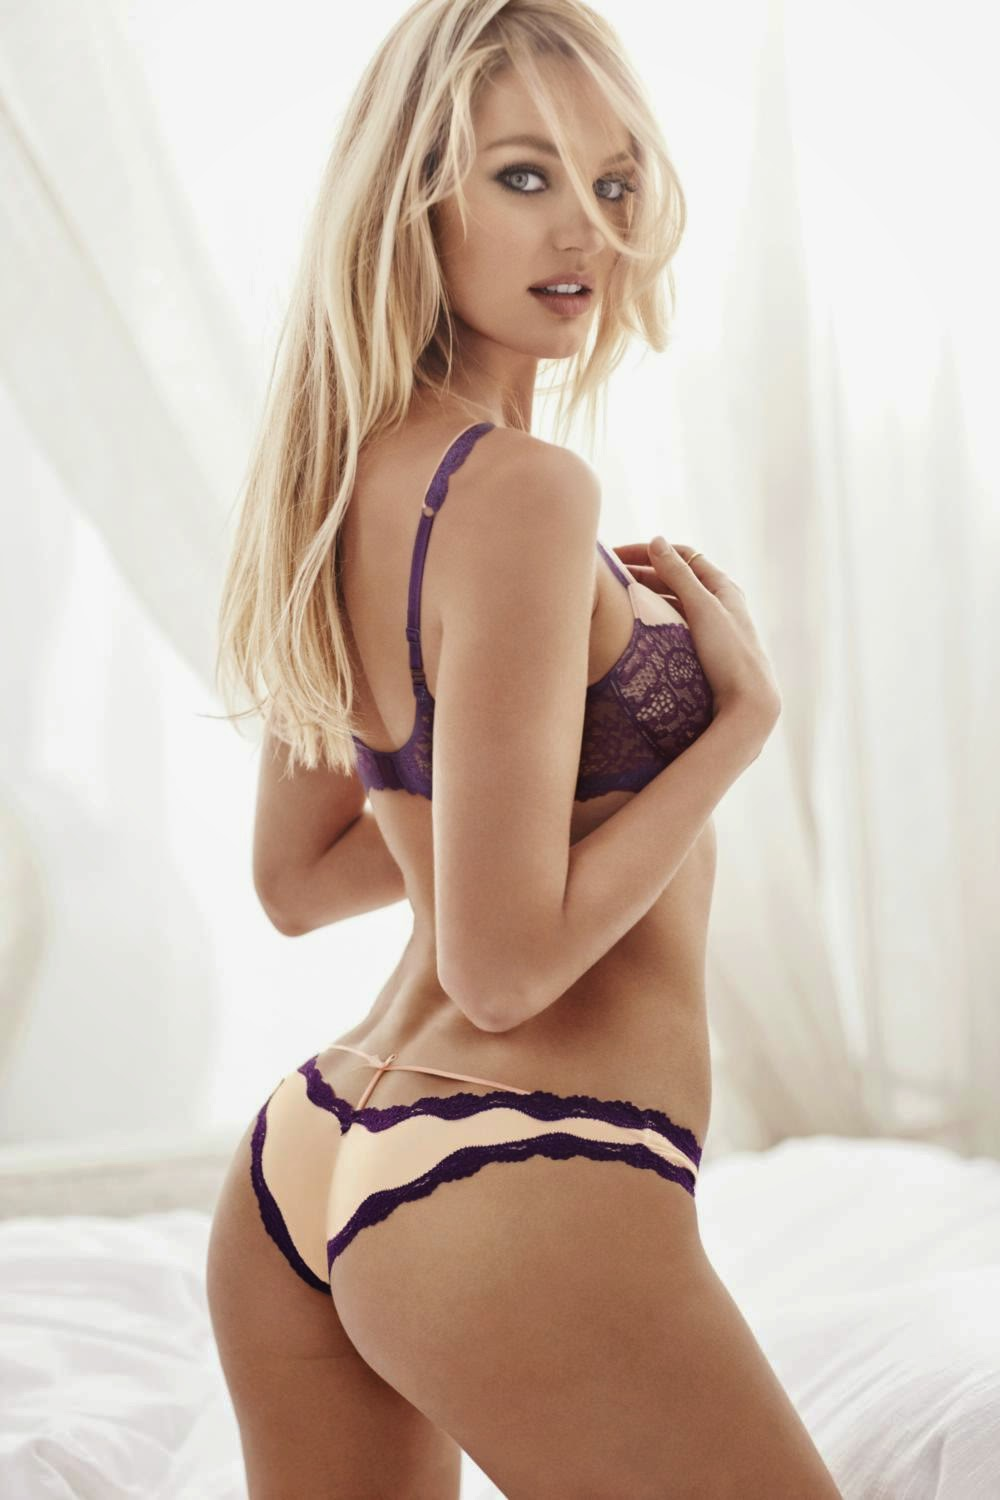 Candice Swanepoel And Romee Strijid Strip To Lingerie For